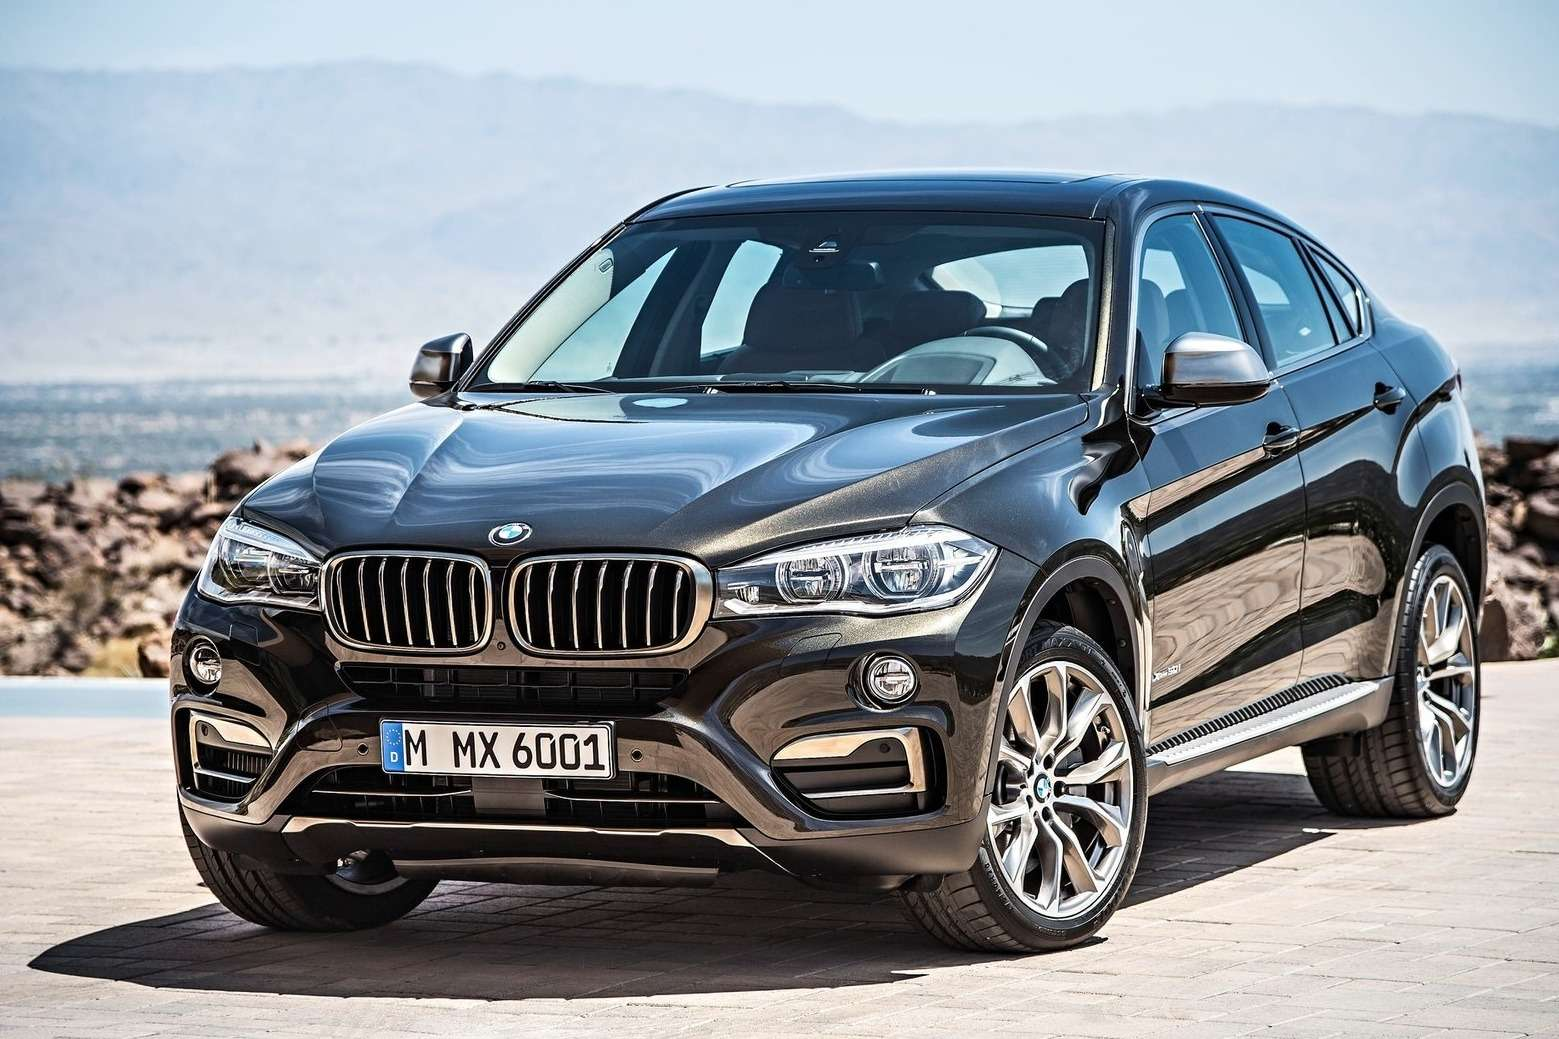 20140606_bmw_x6_2015_1600x1200_wallpaper_04